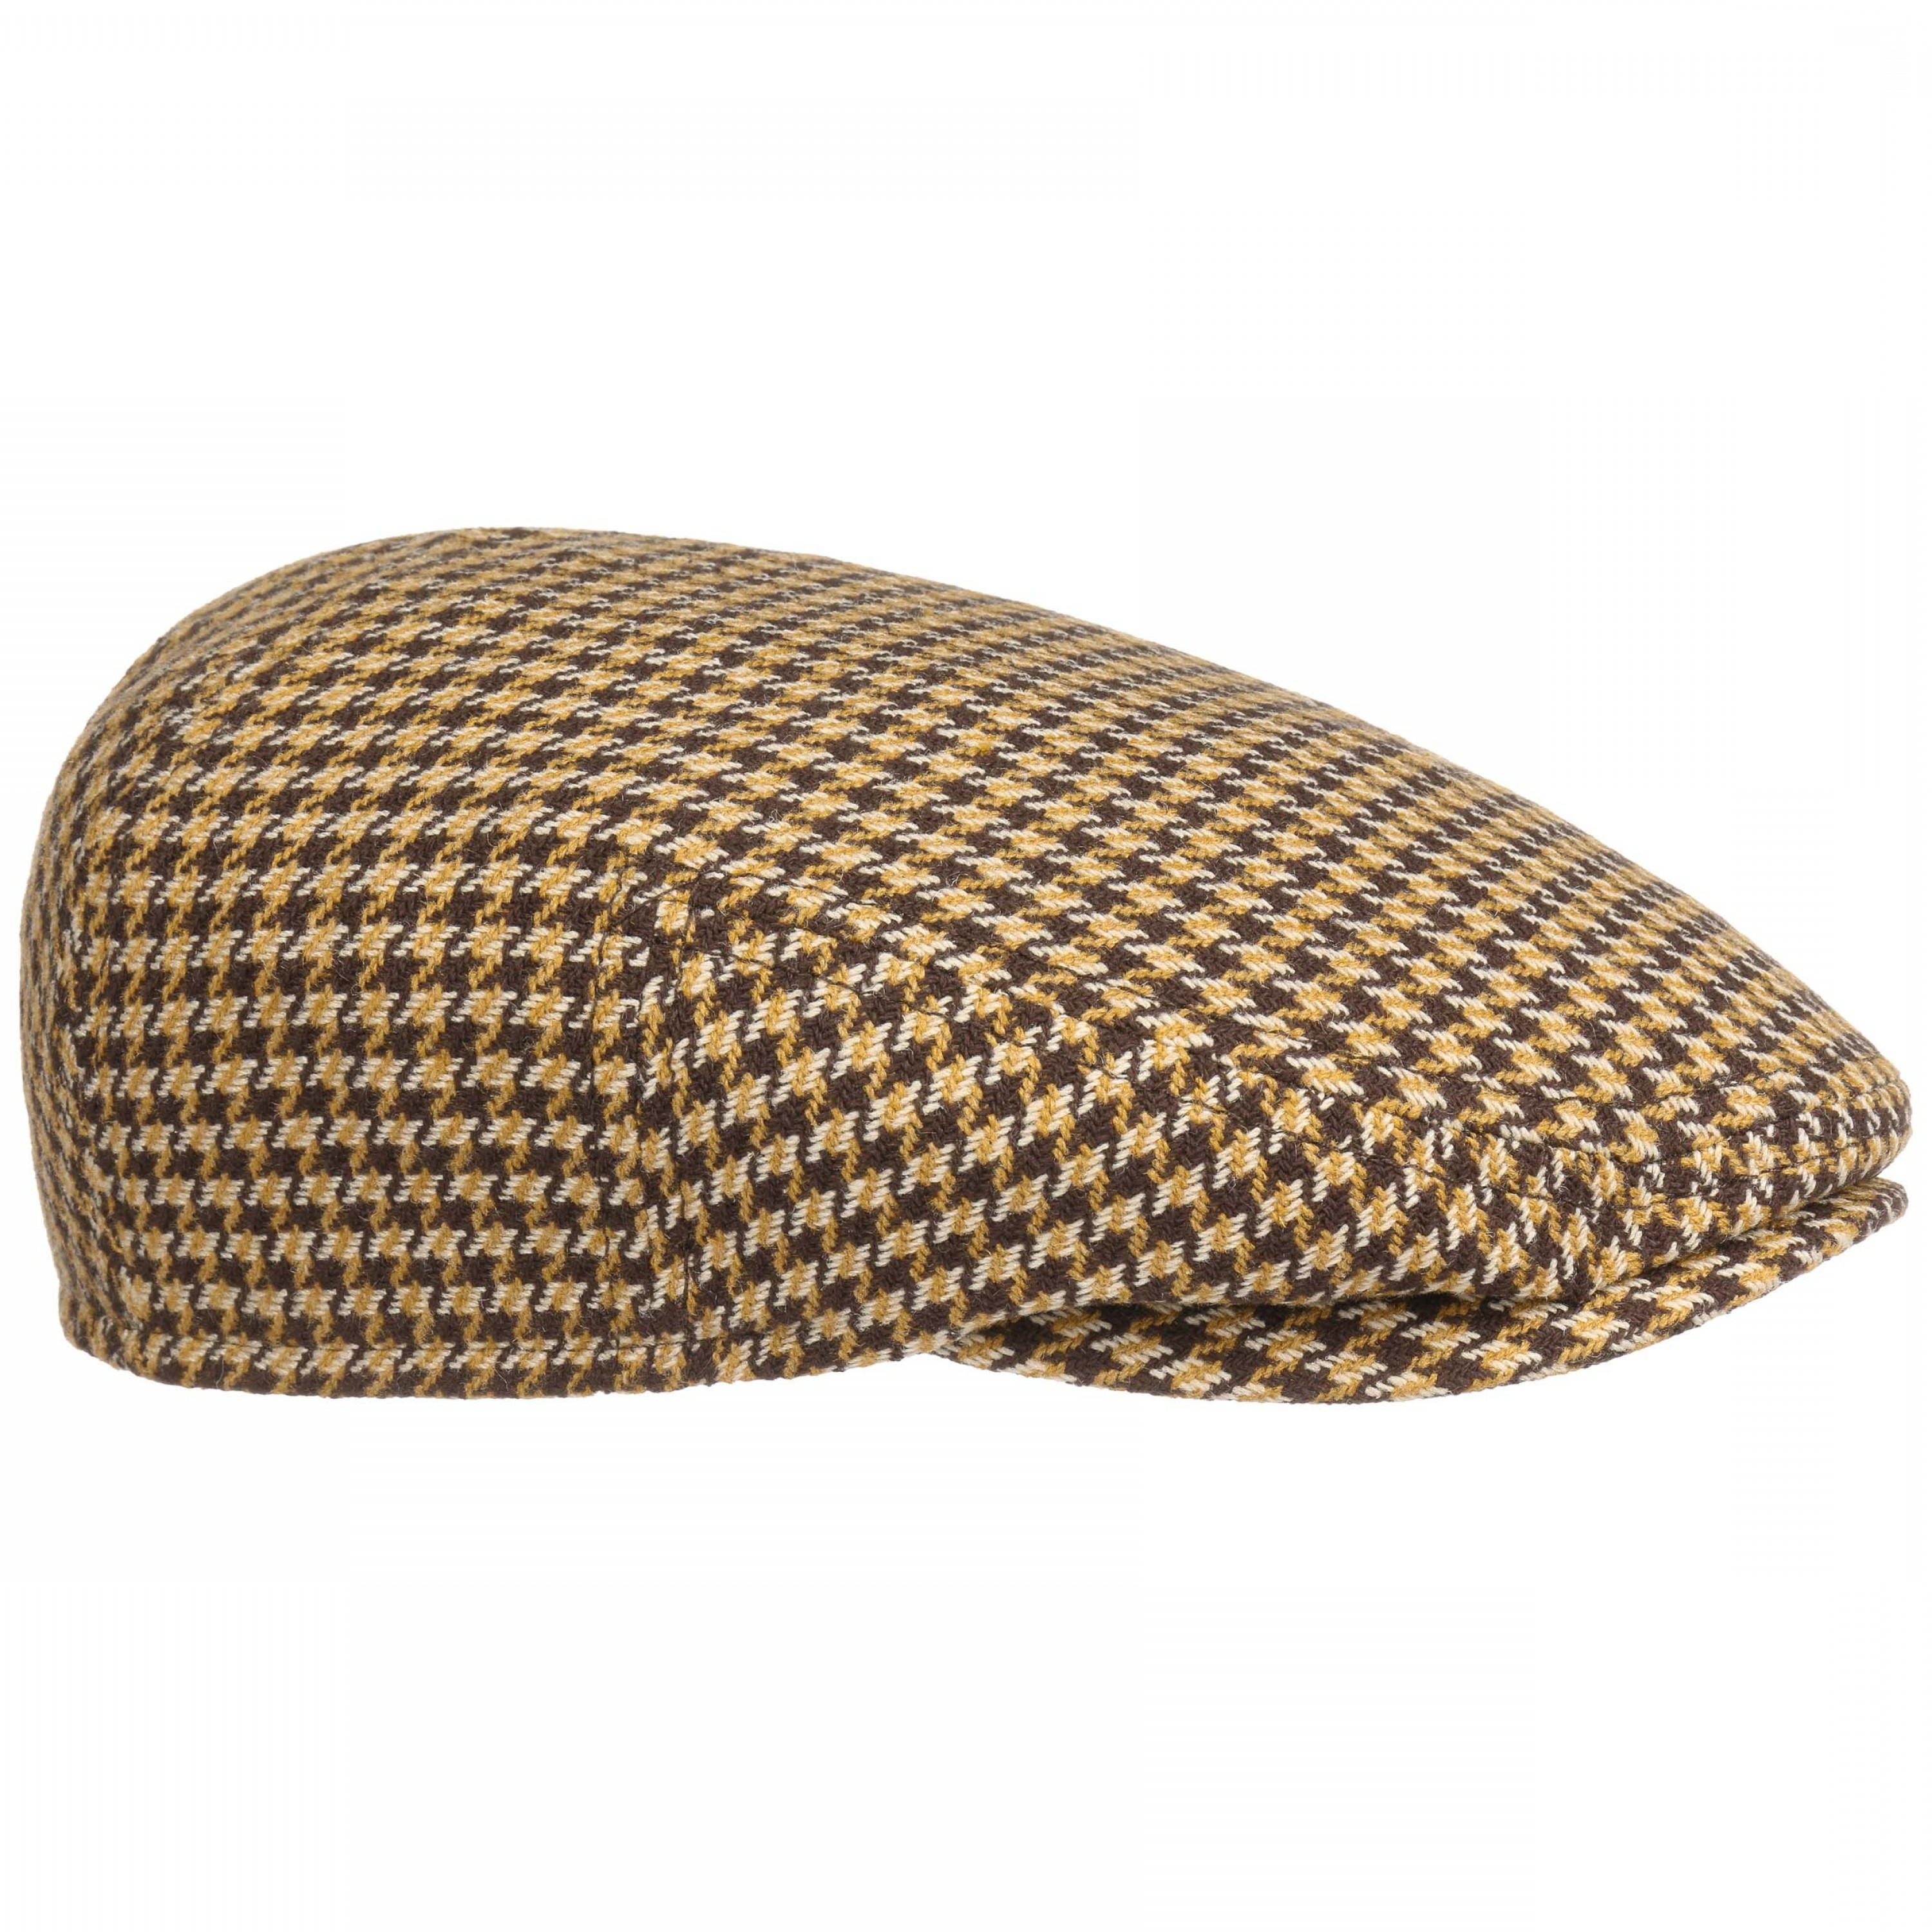 Houndstooth Hats Vector: Kent Silk Houndstooth Flat Cap By Stetson